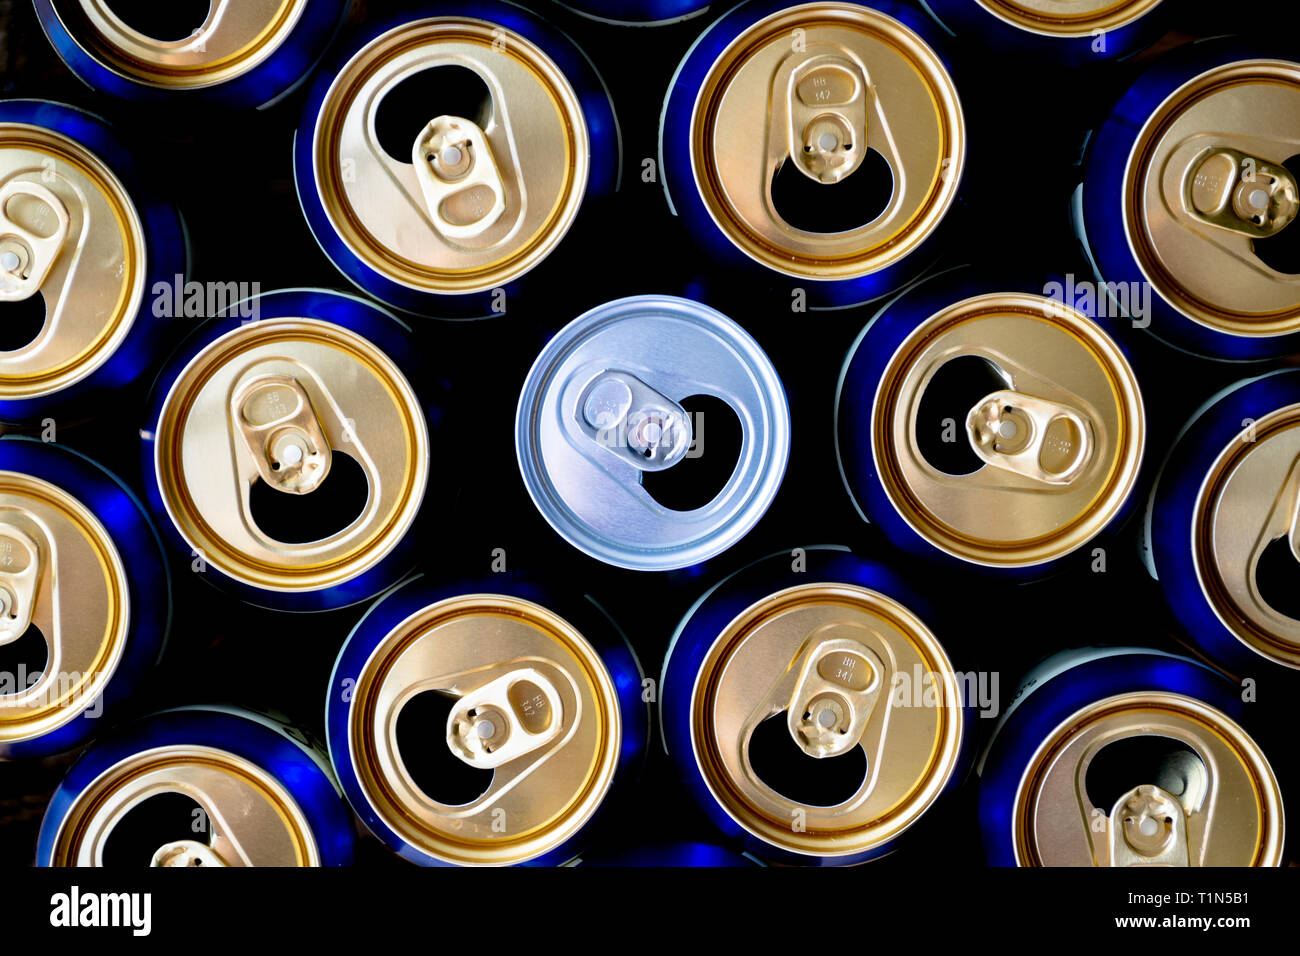 Abstract pattern of opened aluminium cans, top view. One white soda or beer can standing out among yellow and blue cans. Excess drinking, consumerism, - Stock Image